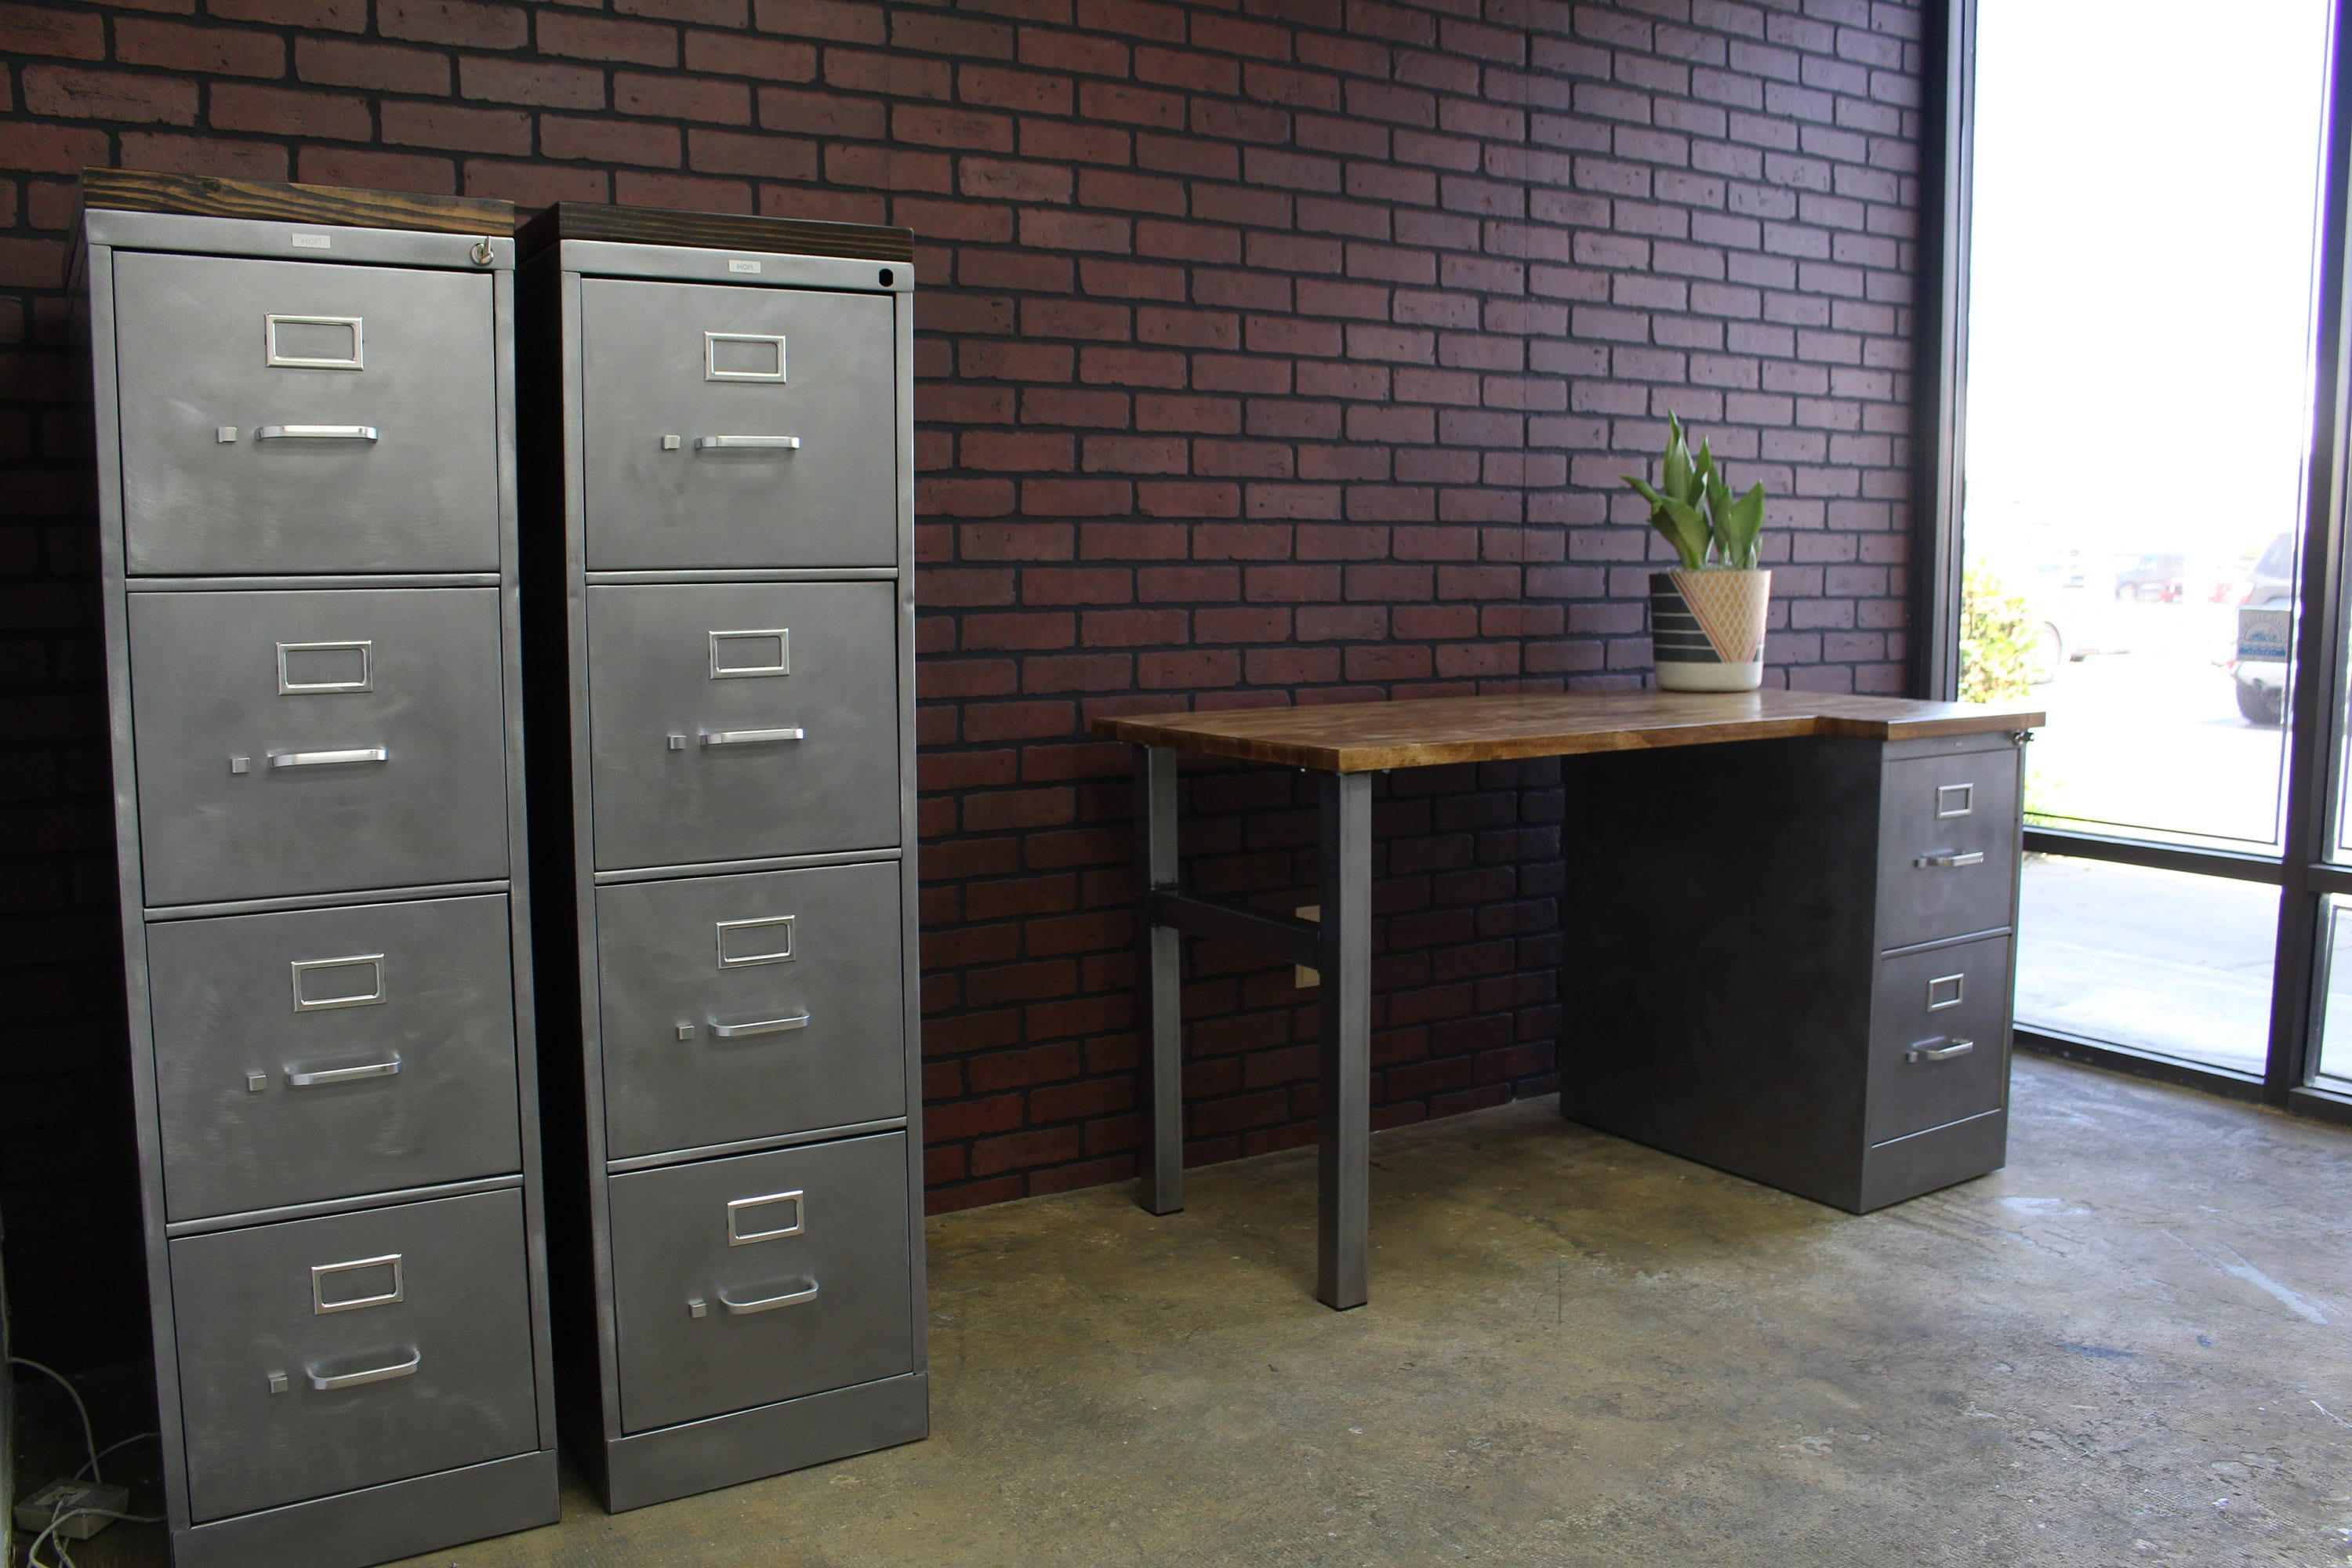 Solid Wood File Cabinet Refinished 4 Drawer Metal Filing Cabinet W Or W O Solid Wood Top Industrial Cabinet Metal Filing Cabinet Rustic Office Hon